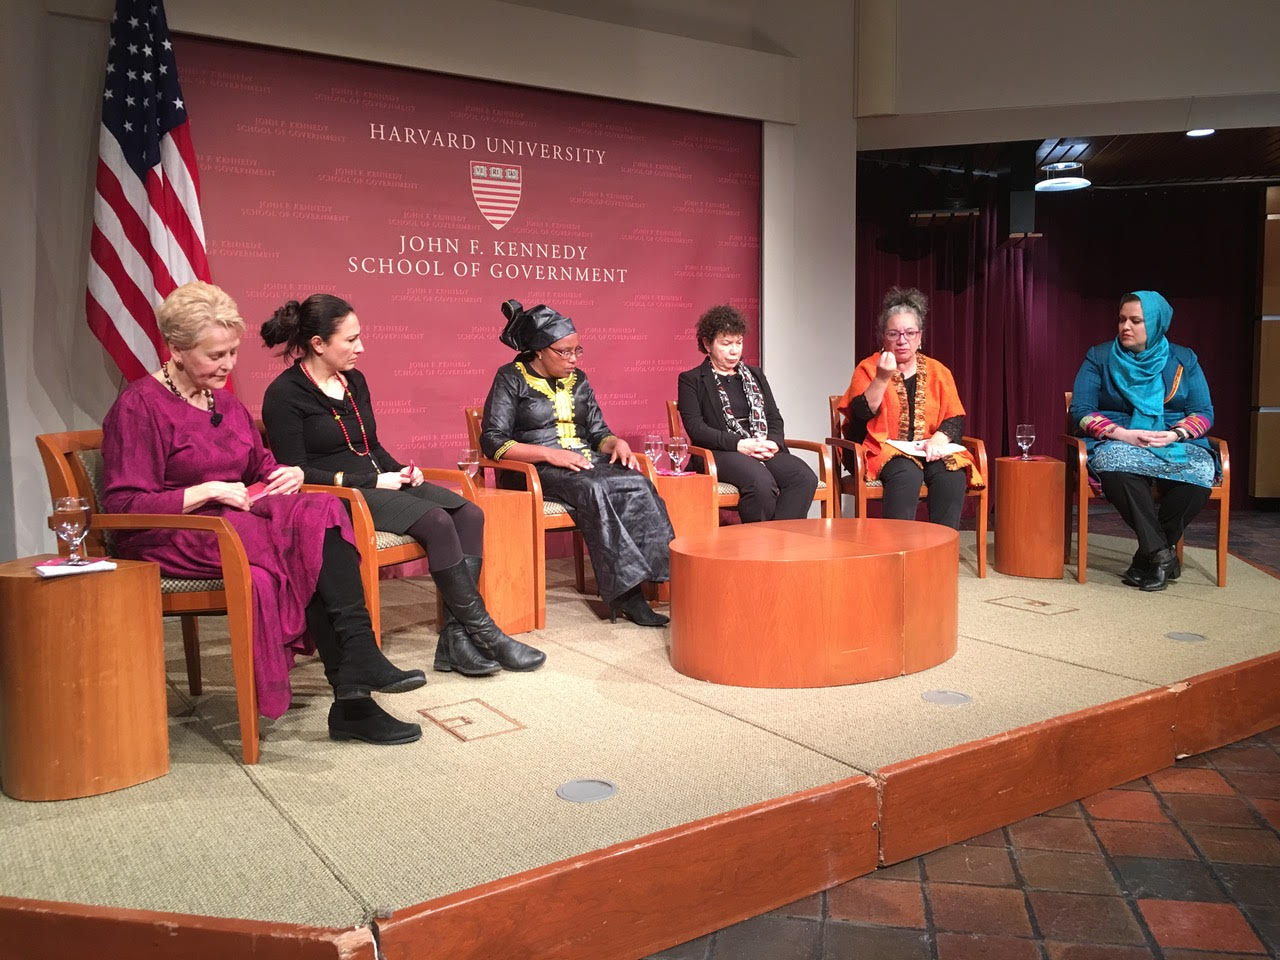 Women Leaders at John F. Kennedy School of Government, Harvard University